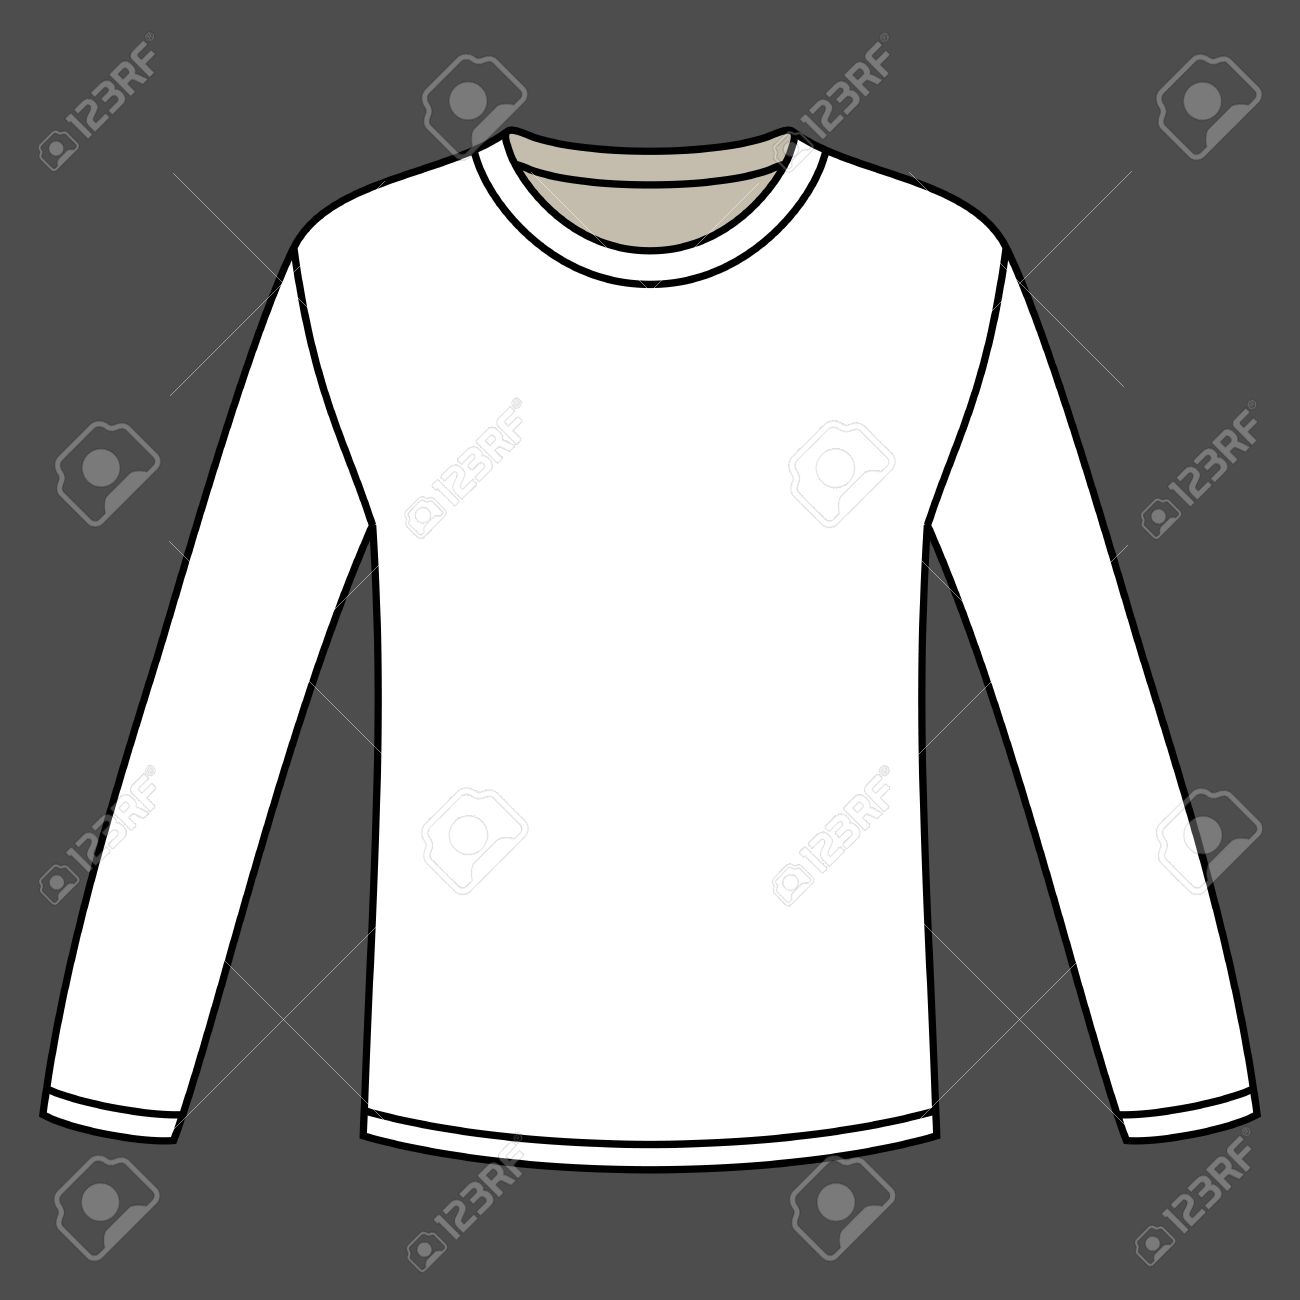 3a75a83d04c7 Blank Long-sleeved T-shirt Template Royalty Free Cliparts, Vectors ...